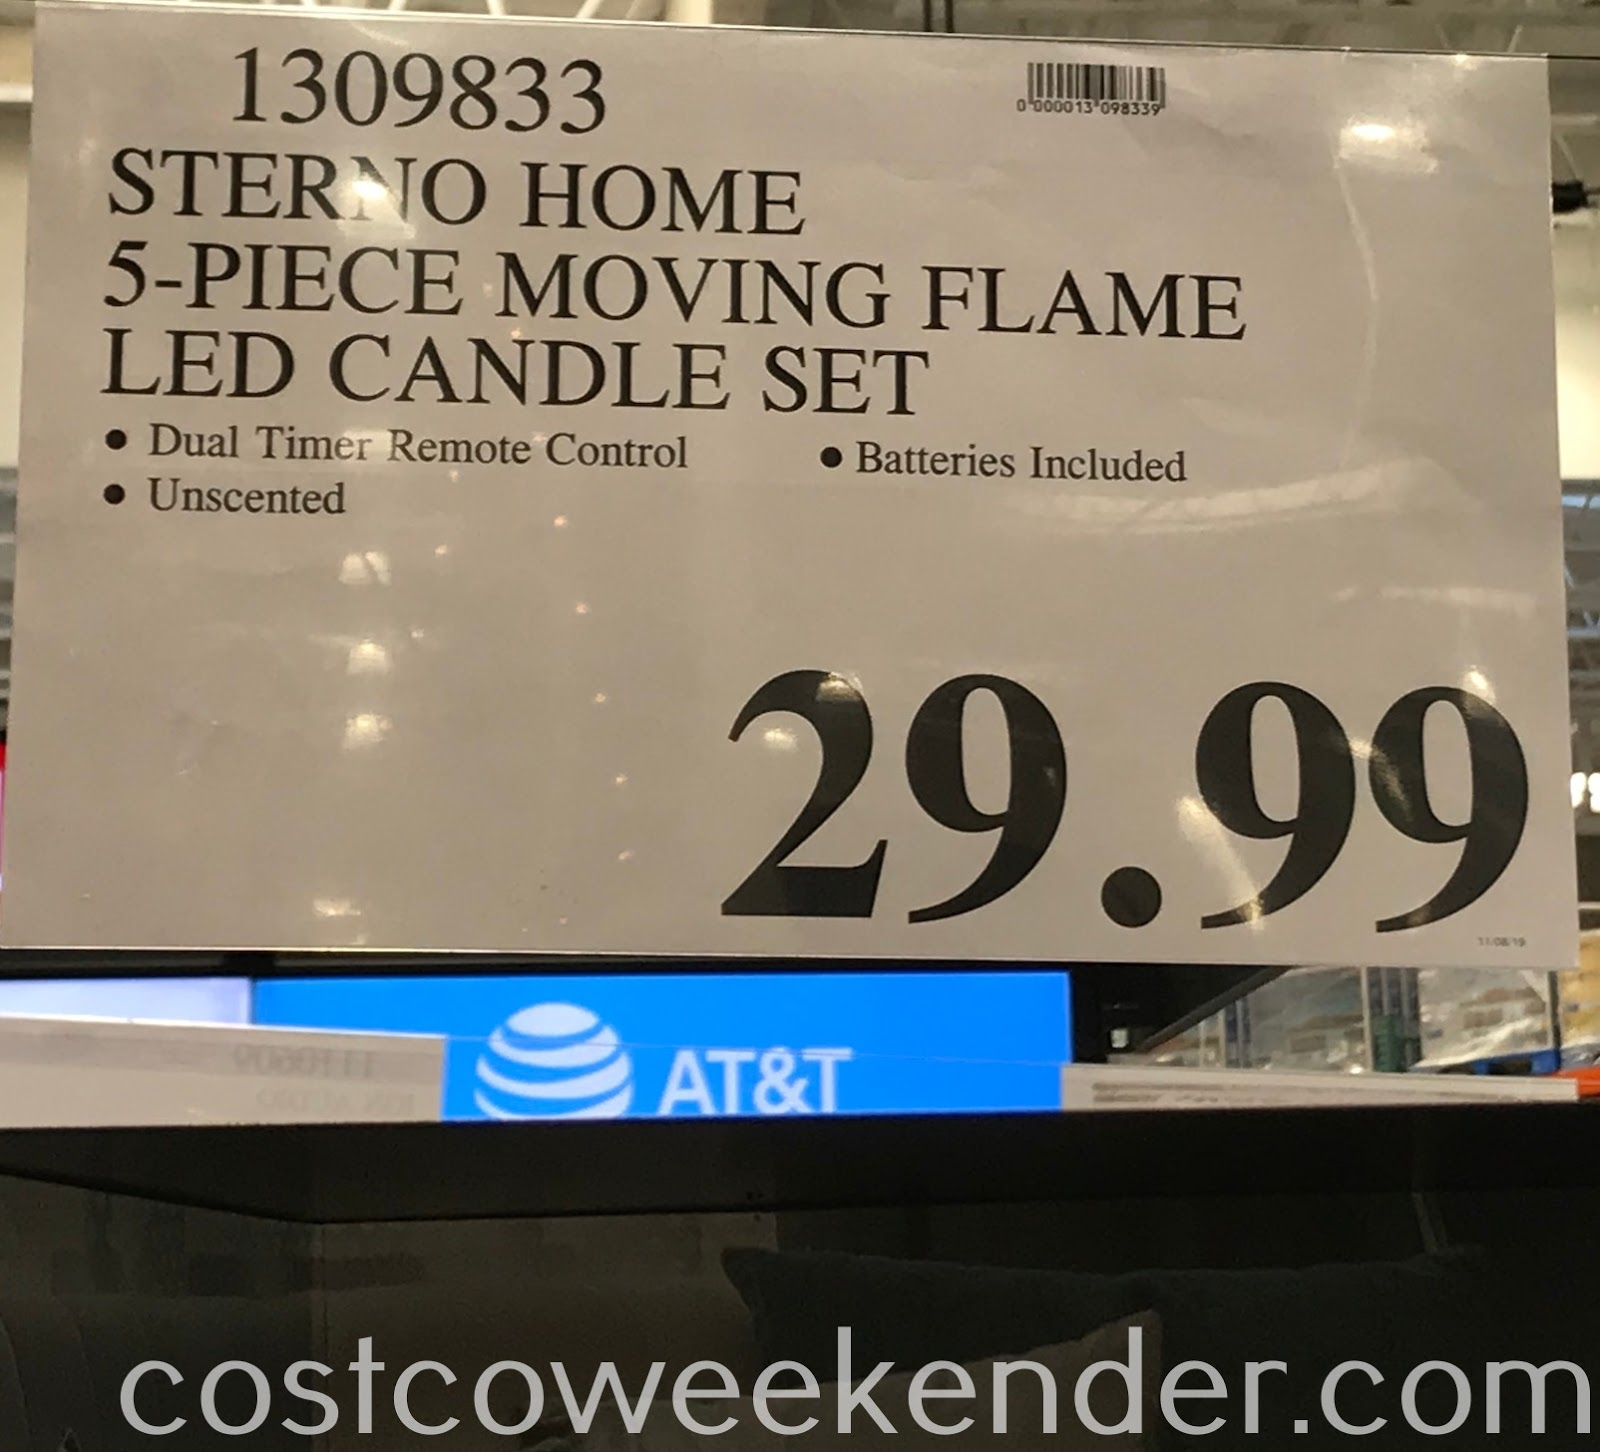 Deal for the Sterno Home 5-piece LED Wax Candles at Costco